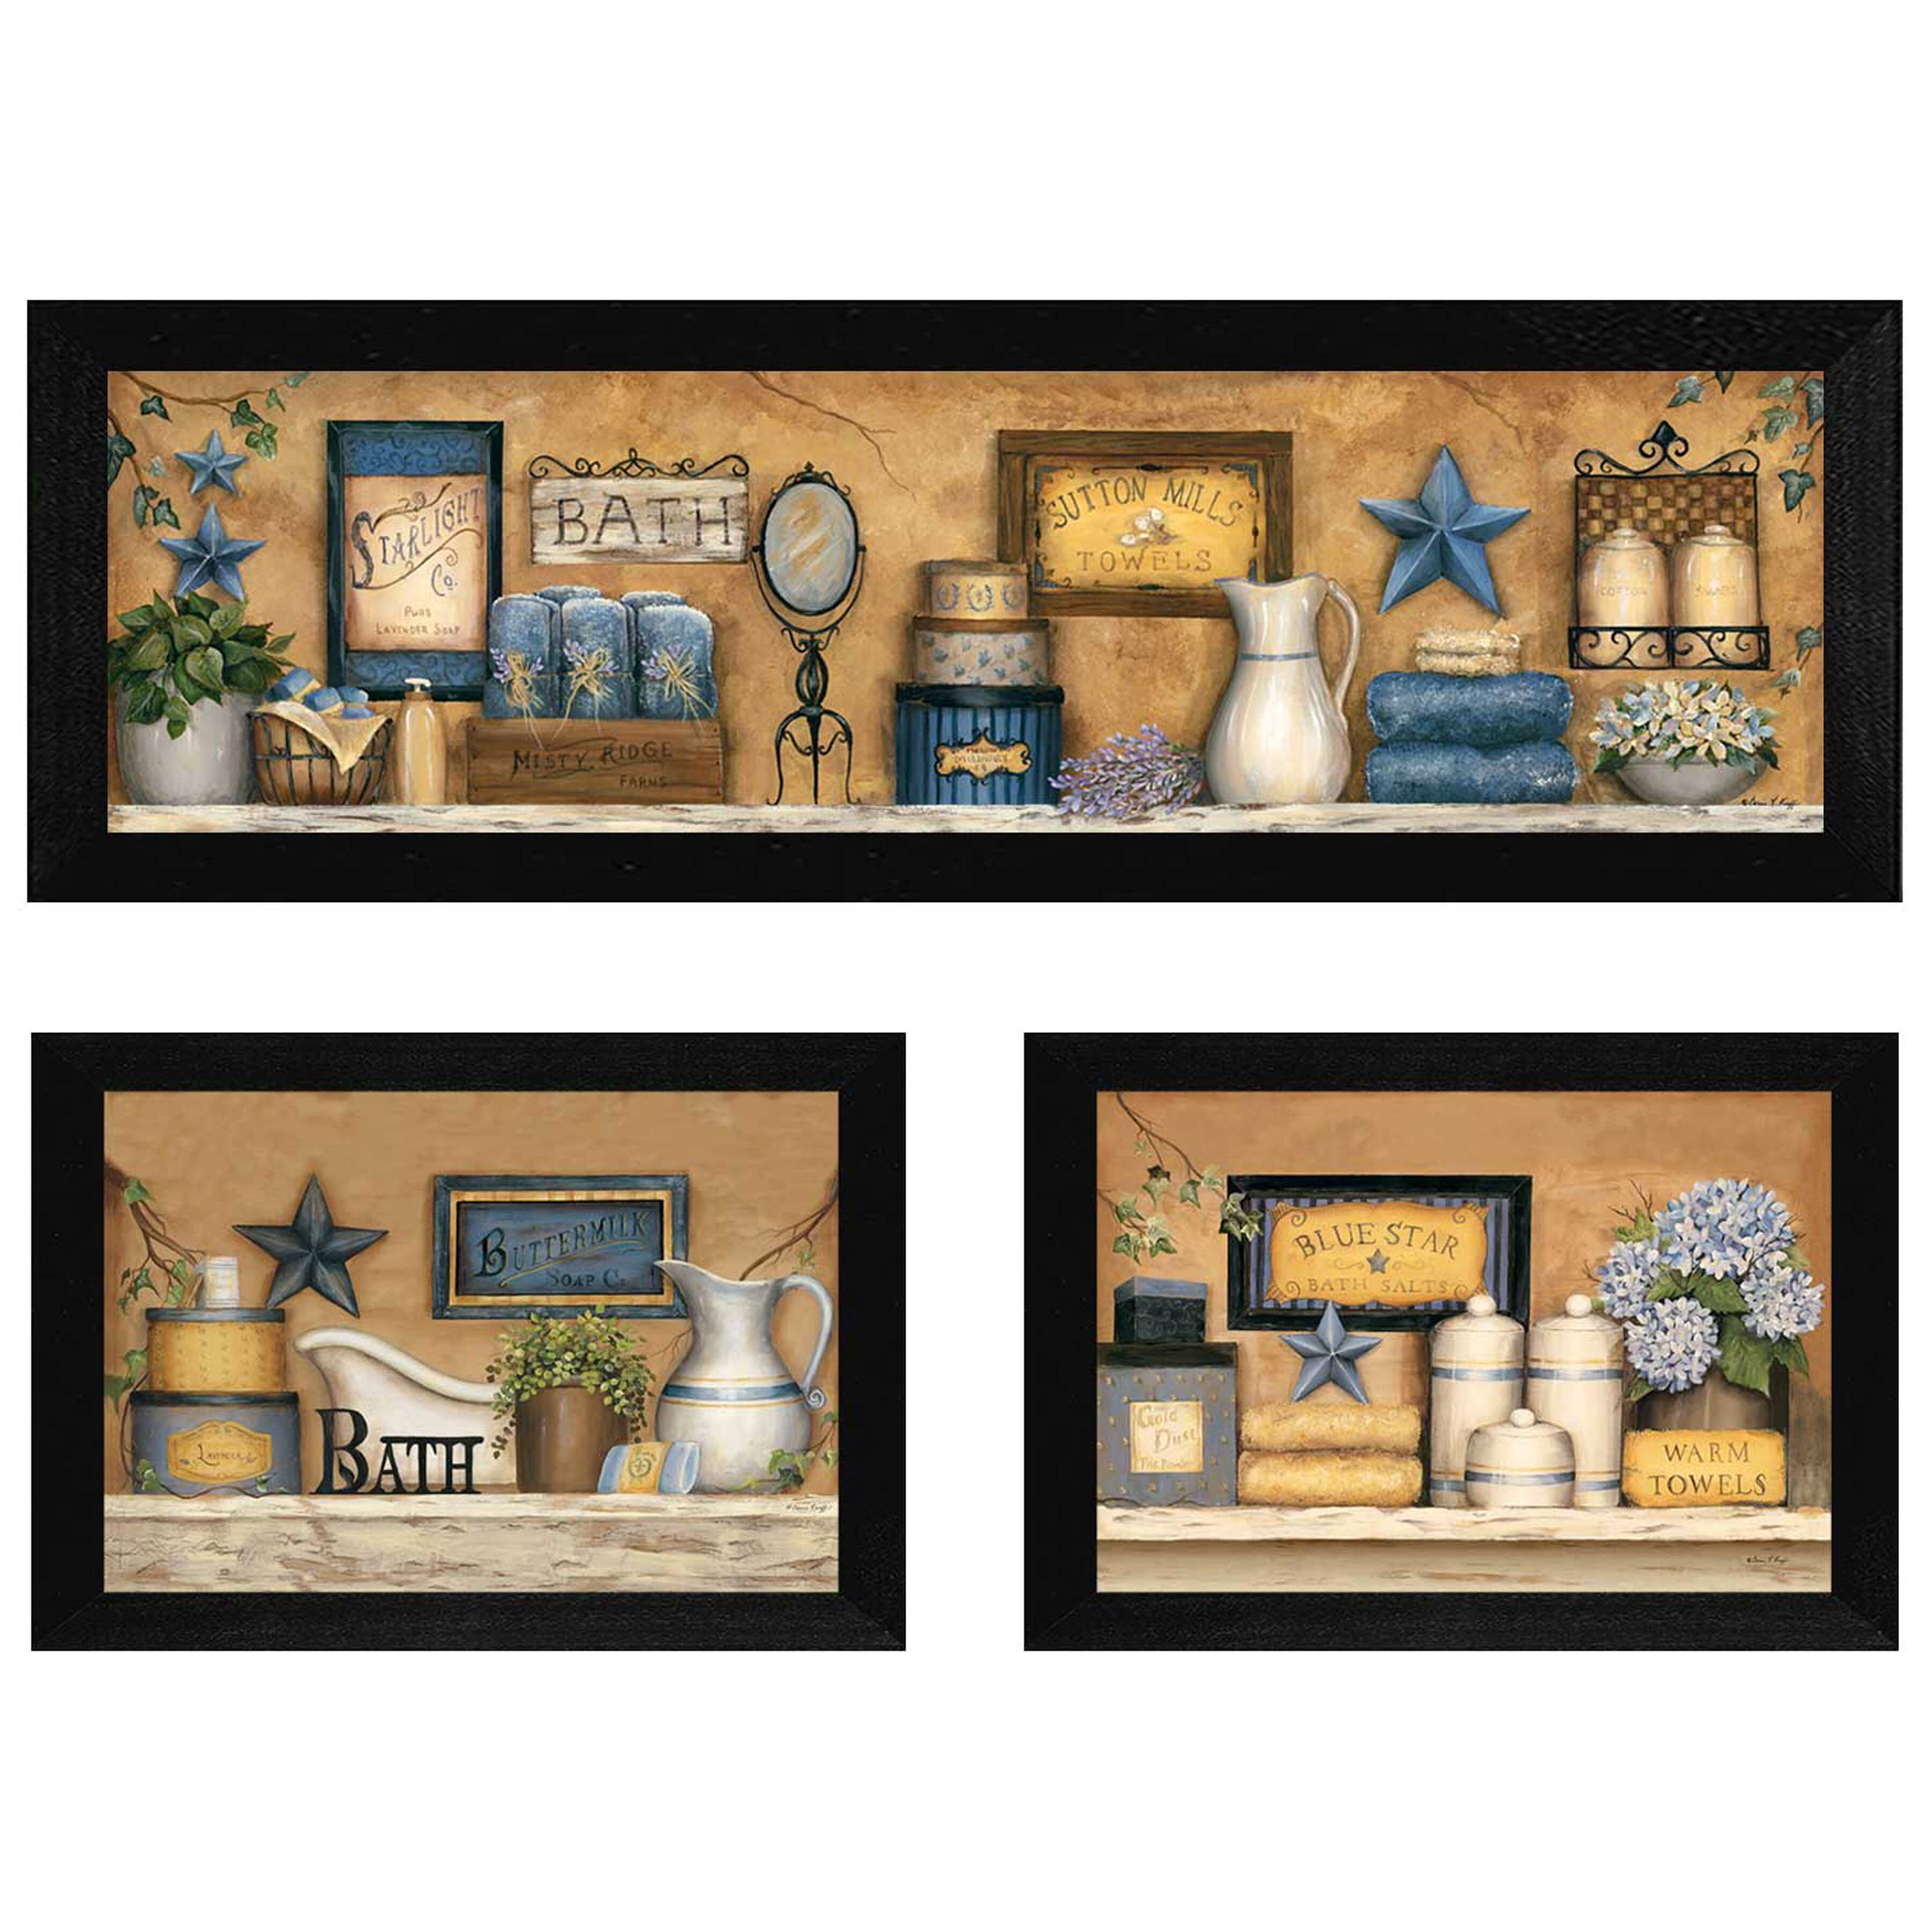 Trendy decor 4u 39 bathroom collection iii 39 by carrie knoff for Trendy bathroom decor